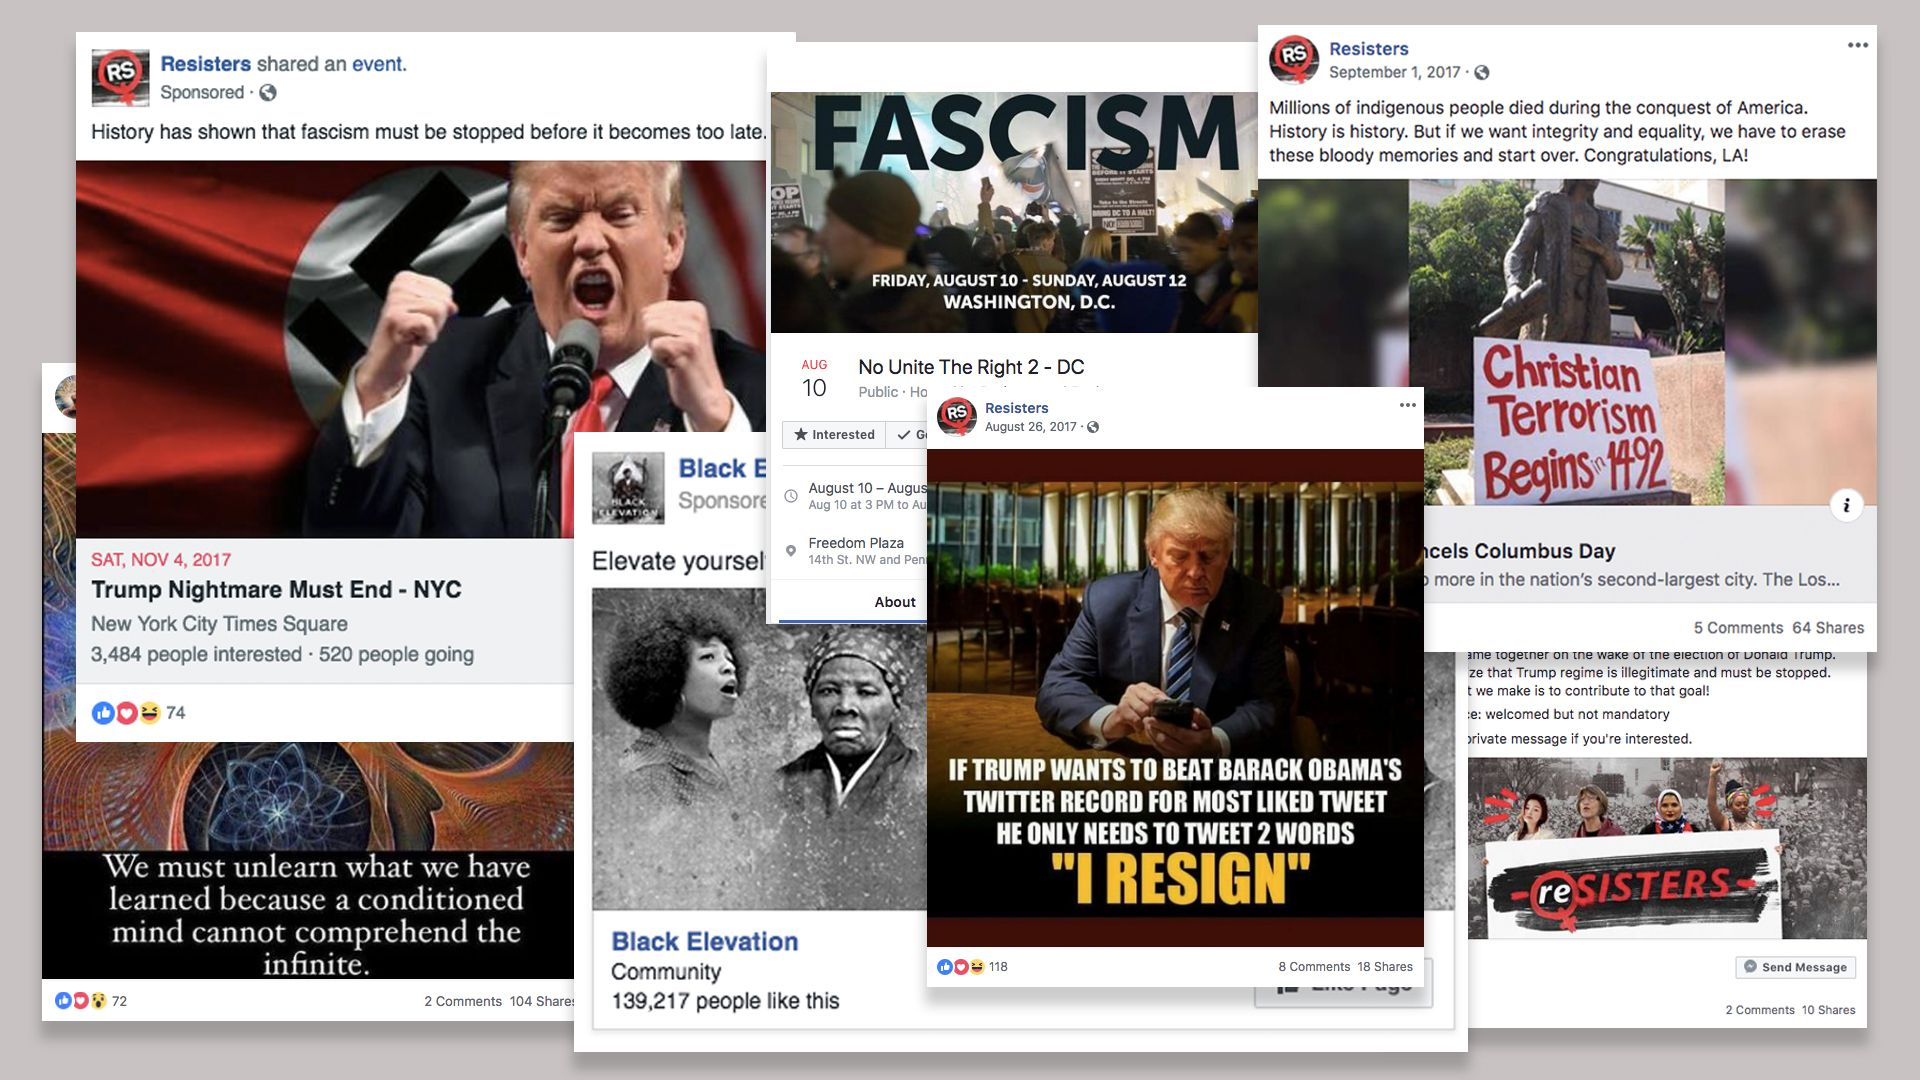 This collage shows different screenshots from Facebook posts that were removed for political disinformation